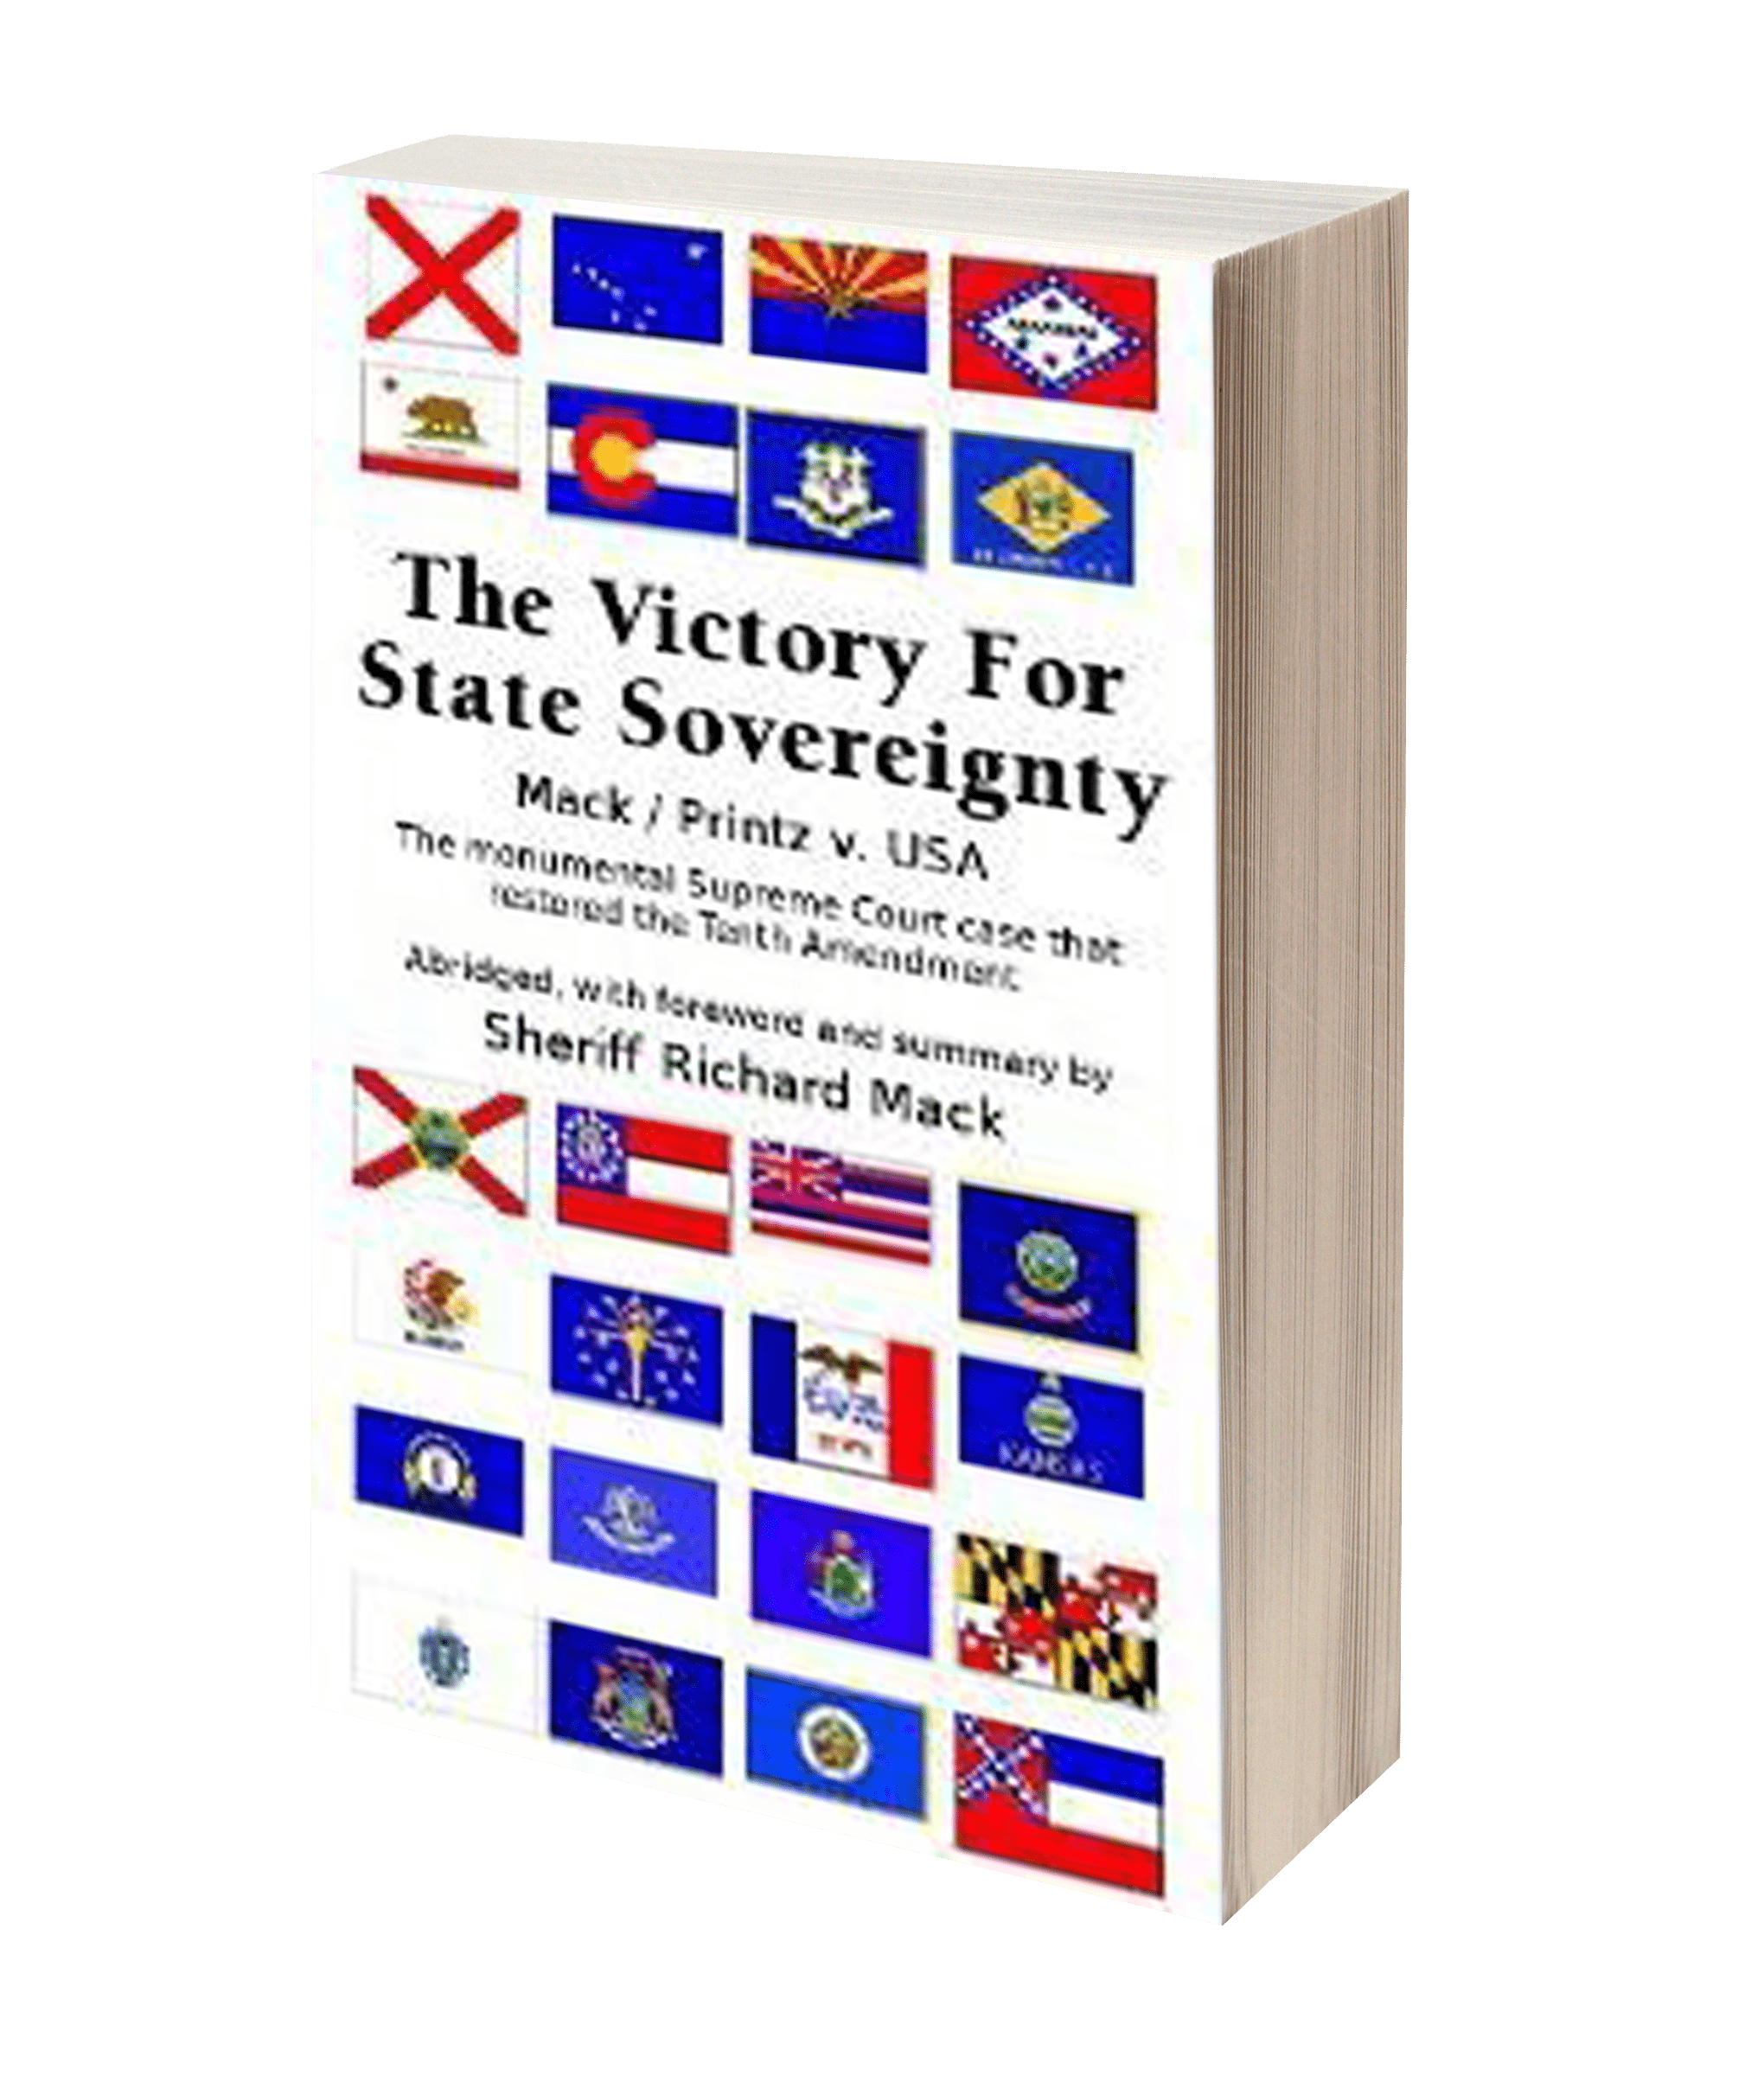 The Victory for State Sovereignty